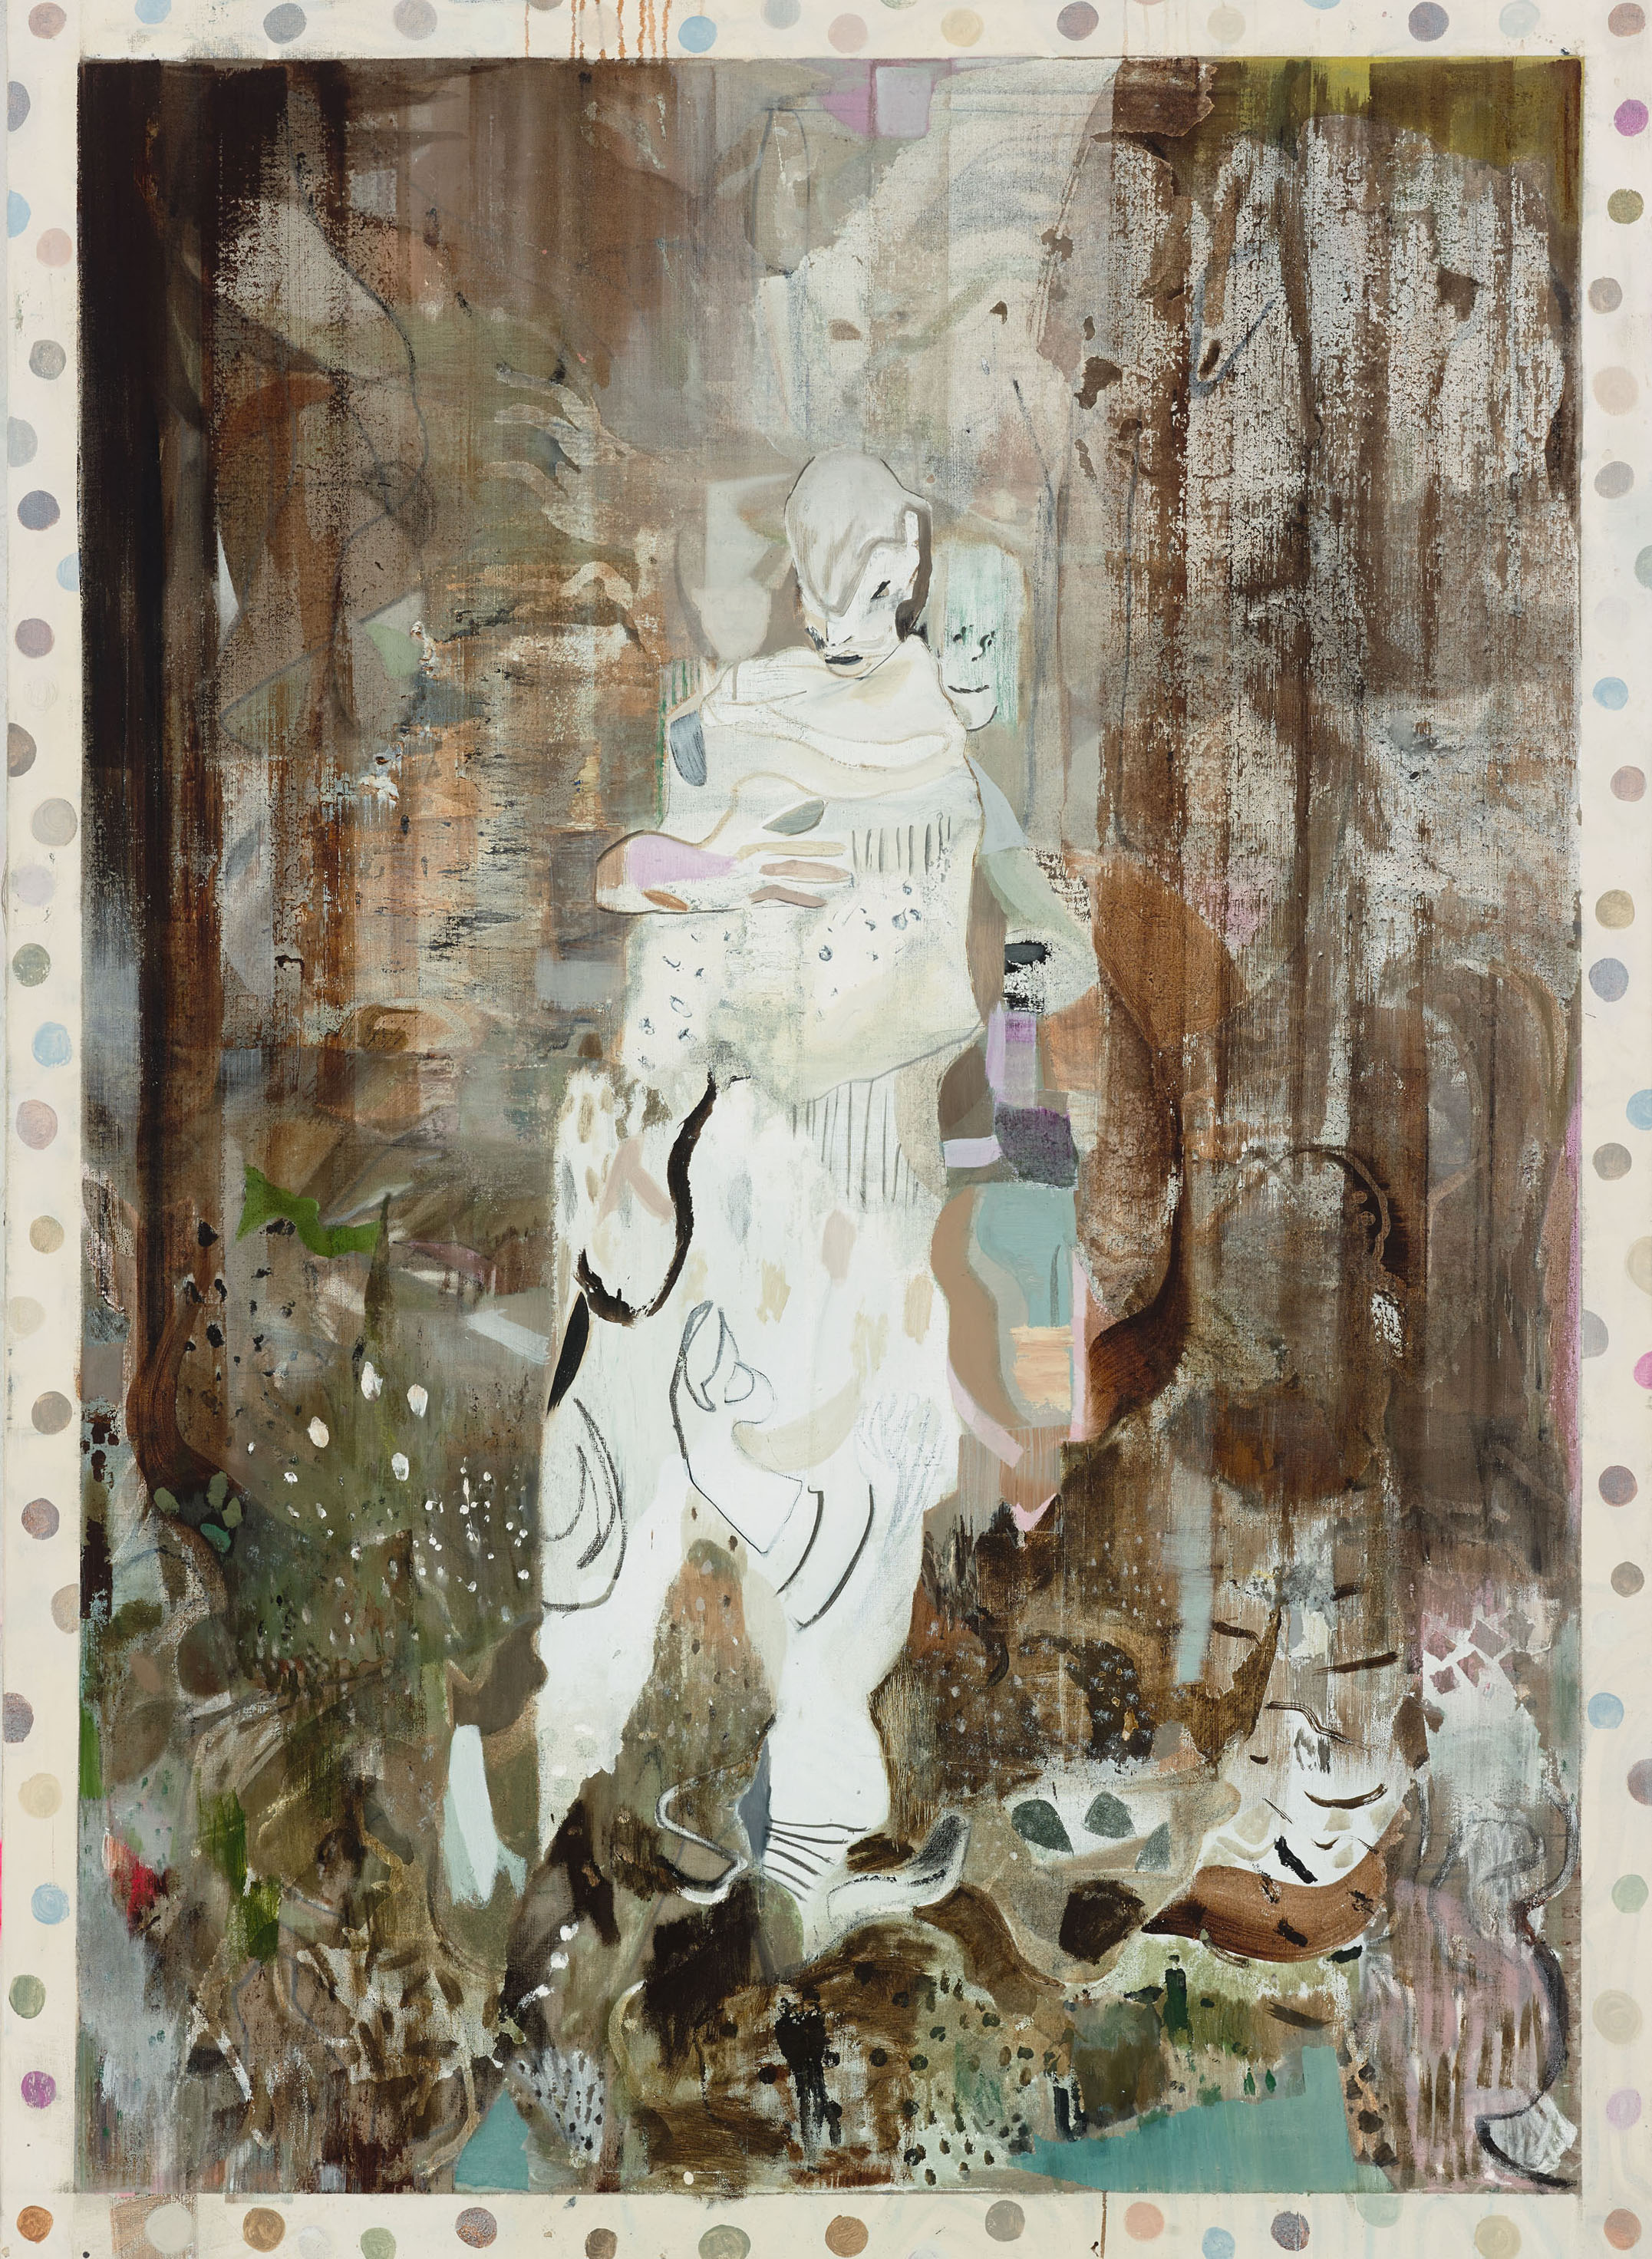 Kevin A. Rausch - Holy Forest - 180 x 130 cm, 2017, mixed media on canvas | Photo: Andrew Rinkhy